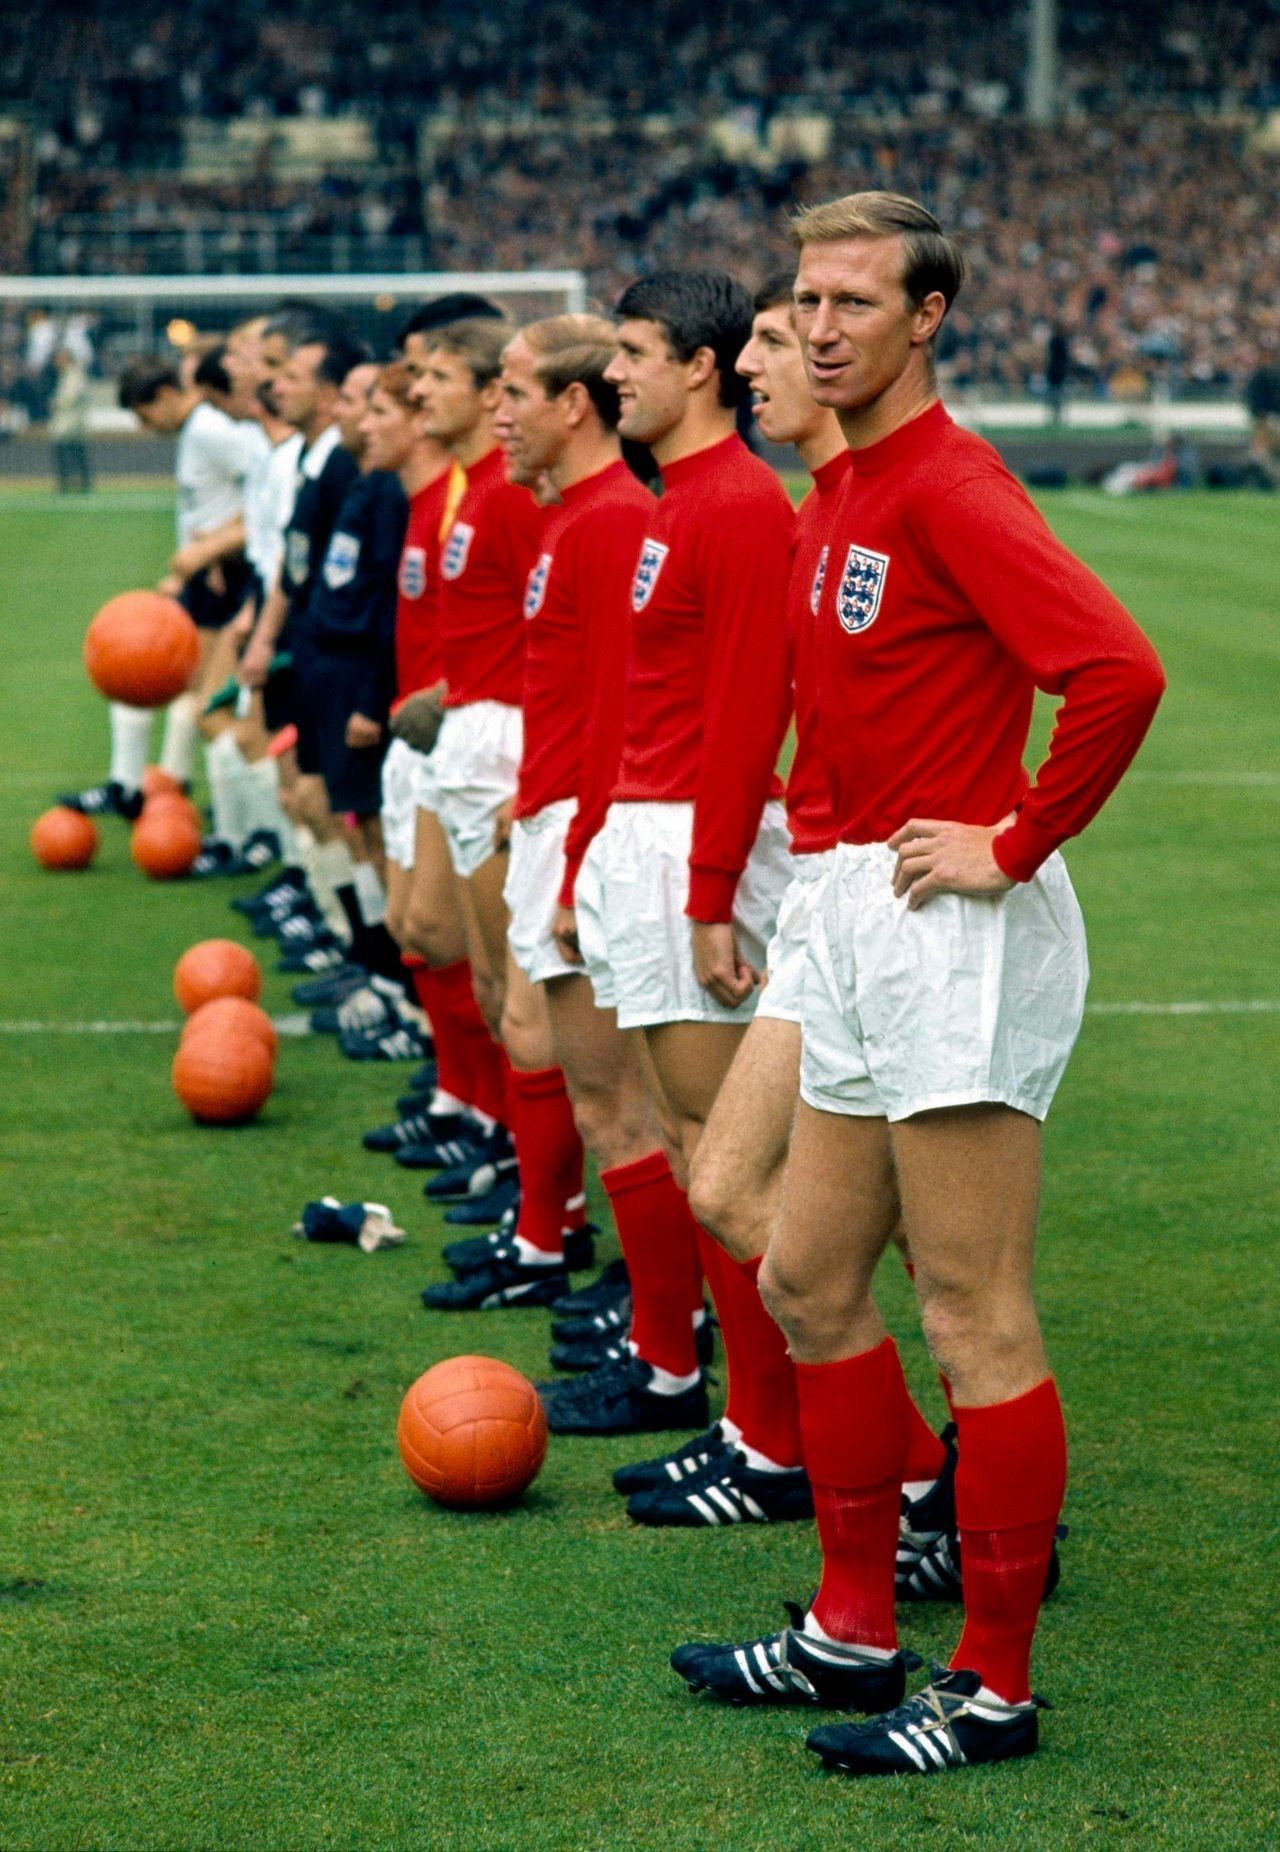 1966 ENGLAND National Football Team that won the Fifa